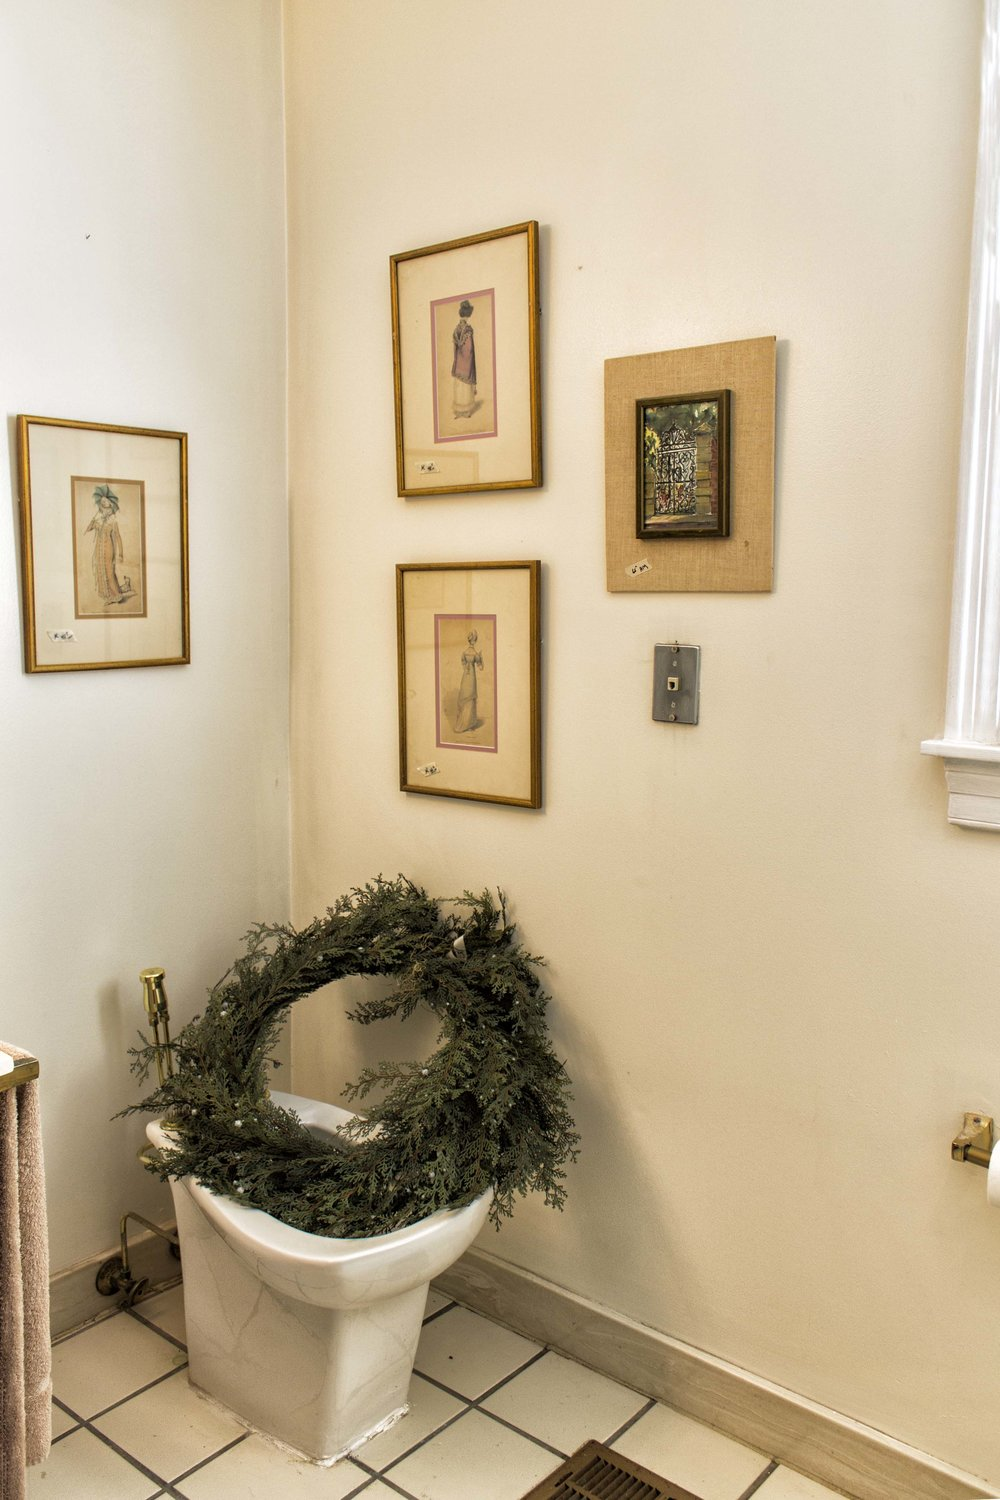 Wreath_in_the_Toilet.jpg